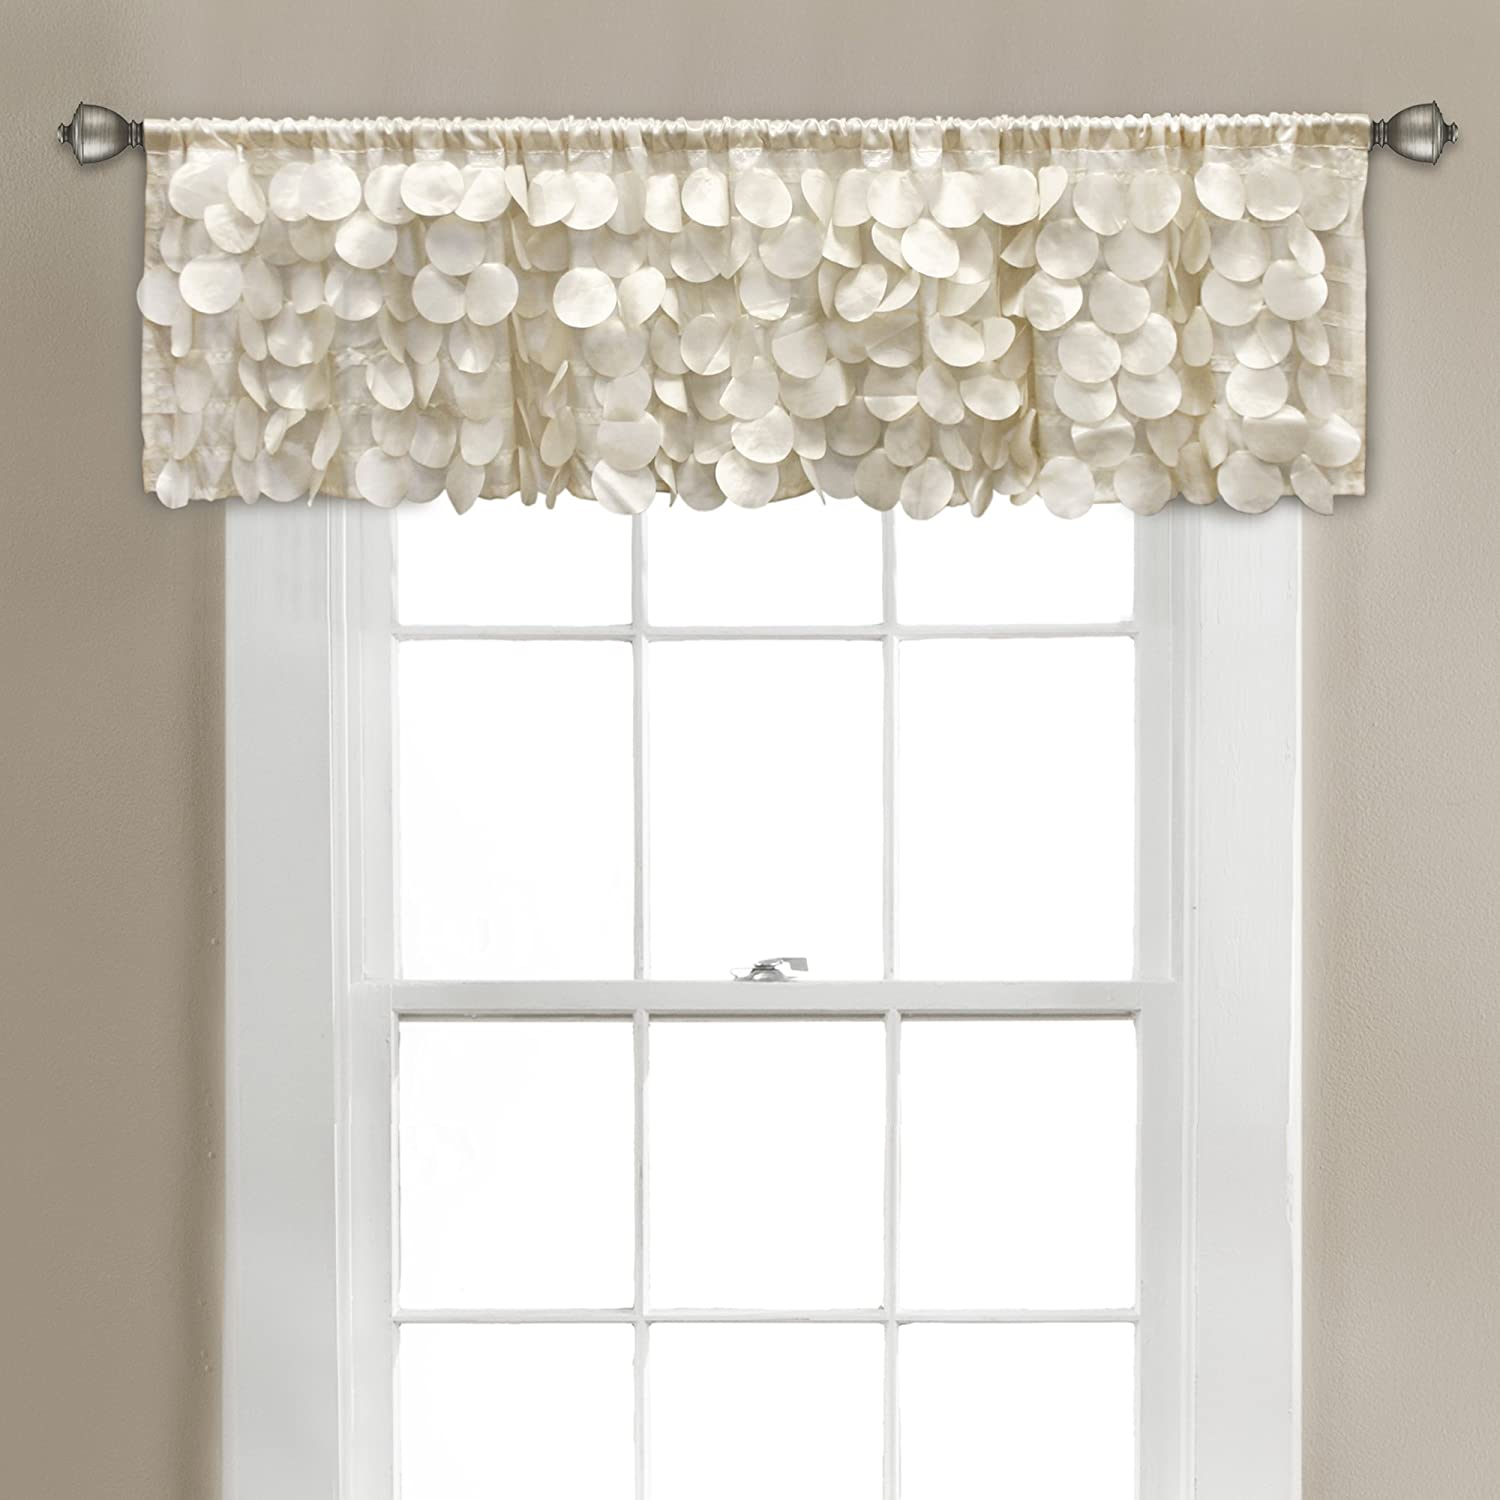 "Lush Decor Gigi Valance Textured Window Kitchen Curtain (Single), 14"" x 70"", Ivory"